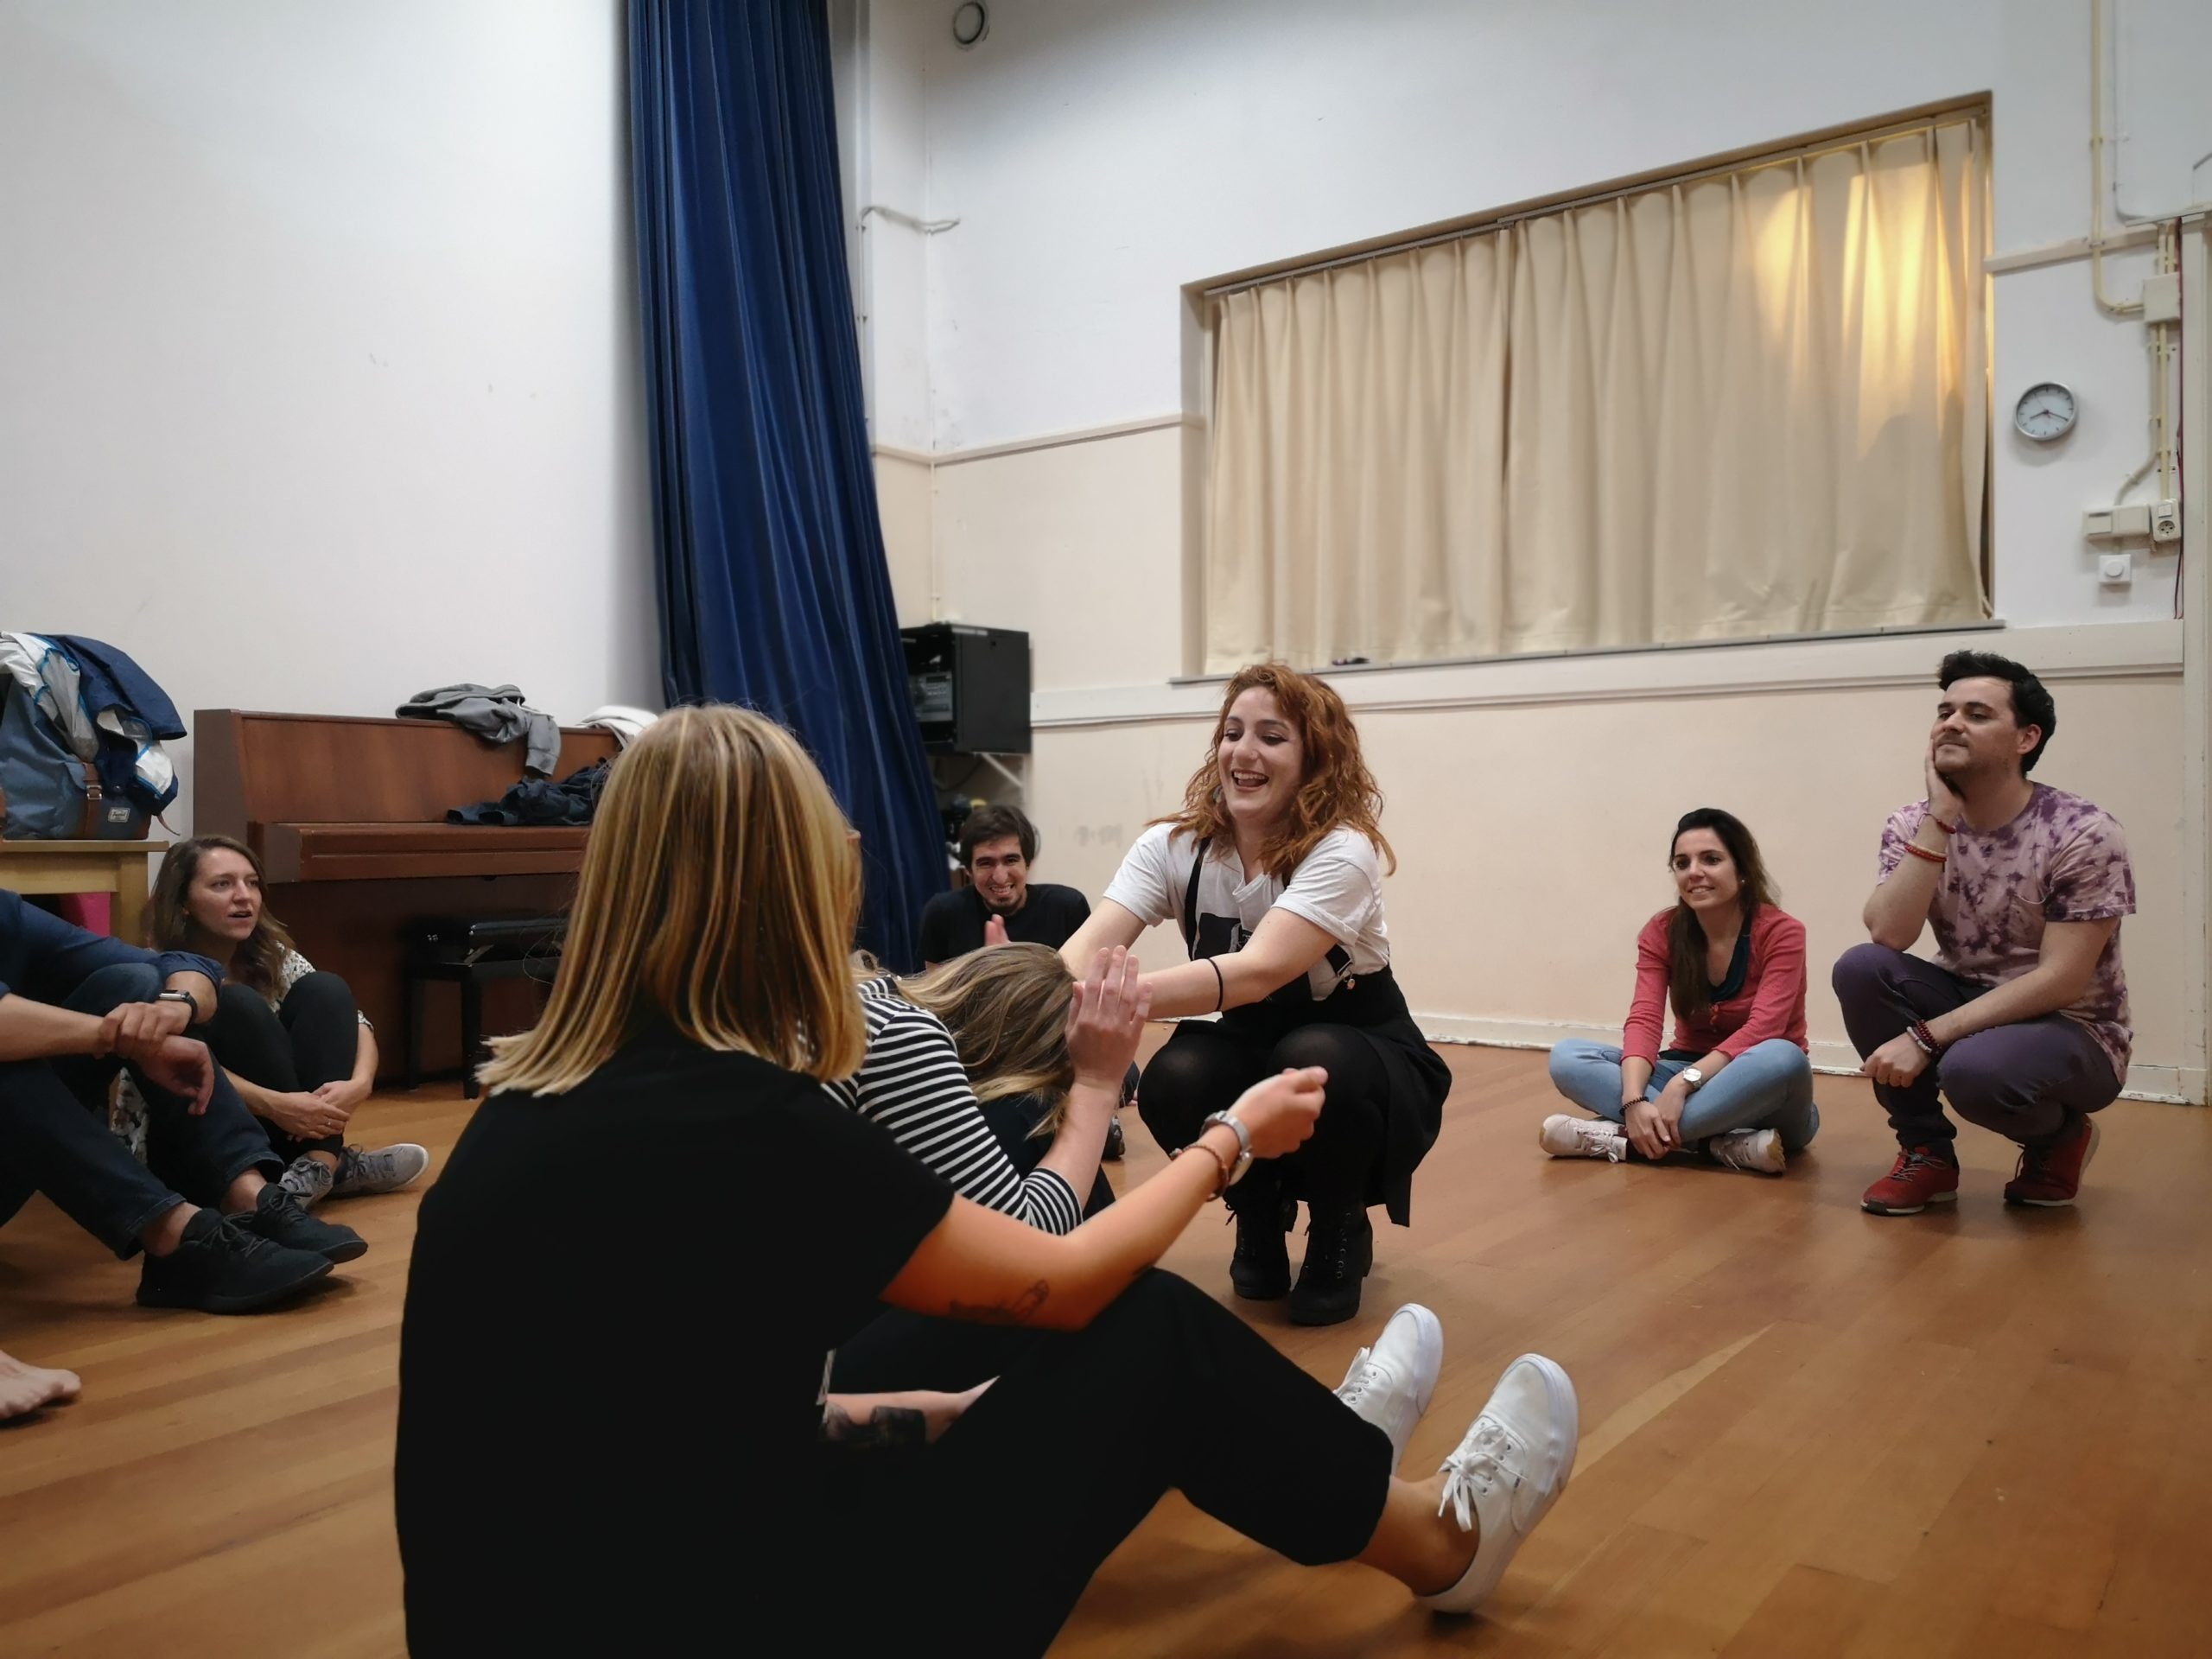 From the improv and physical class. A group sits in a circle. Three women are in the middle, two sitting, one kneeling and laughing, reaching her hands to one of the others.